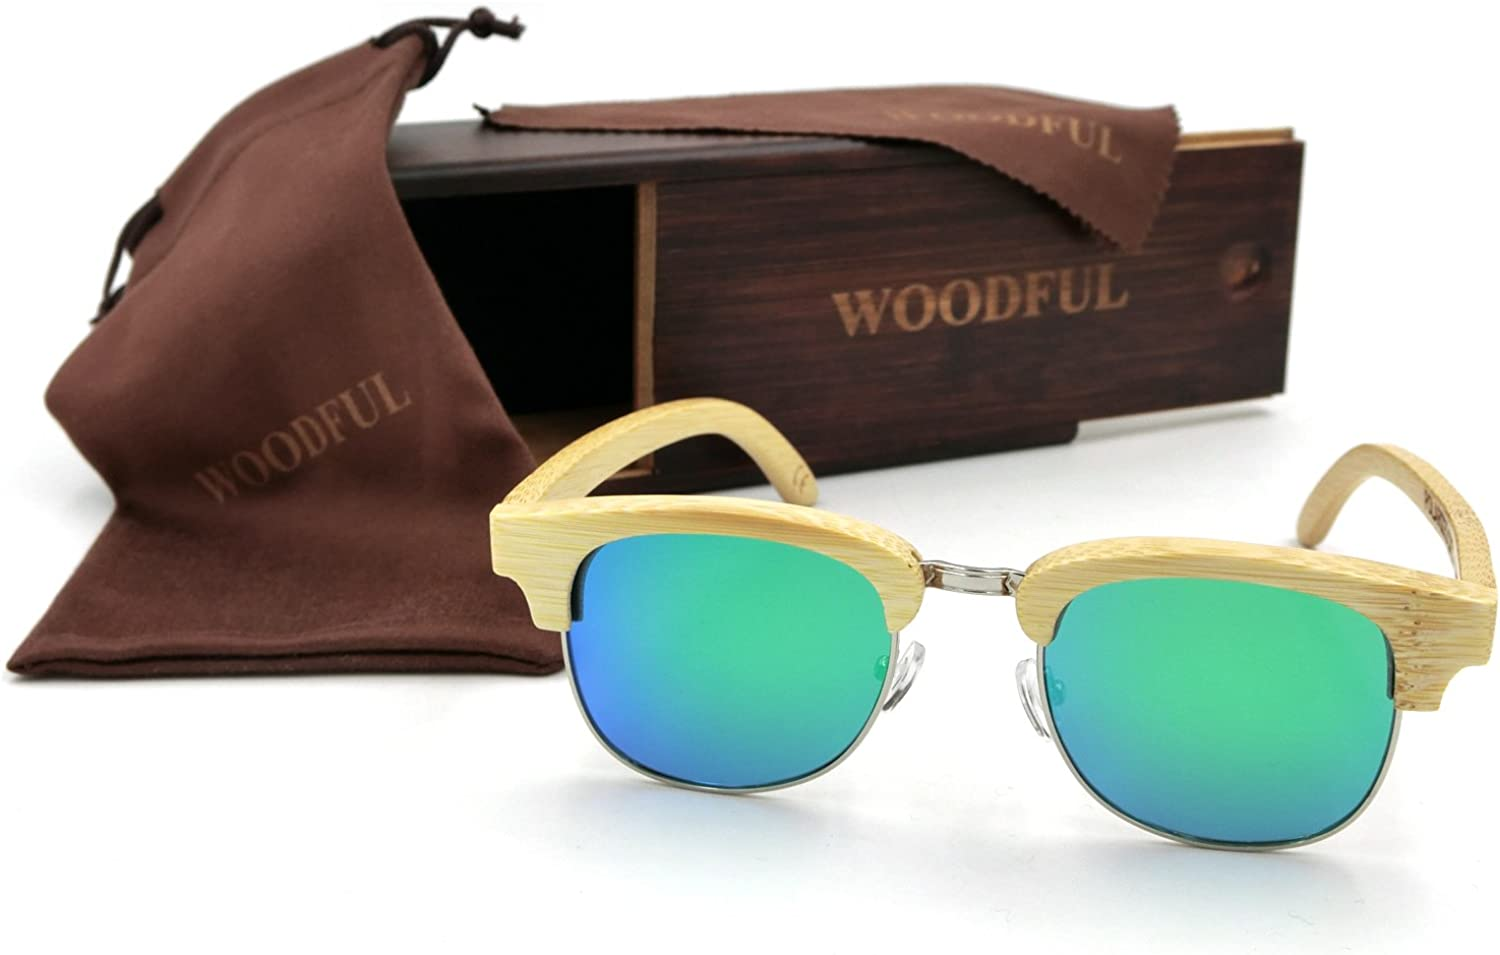 Half Bamboo Sunglasses Wood Frame Glasses with Sunglasses Case